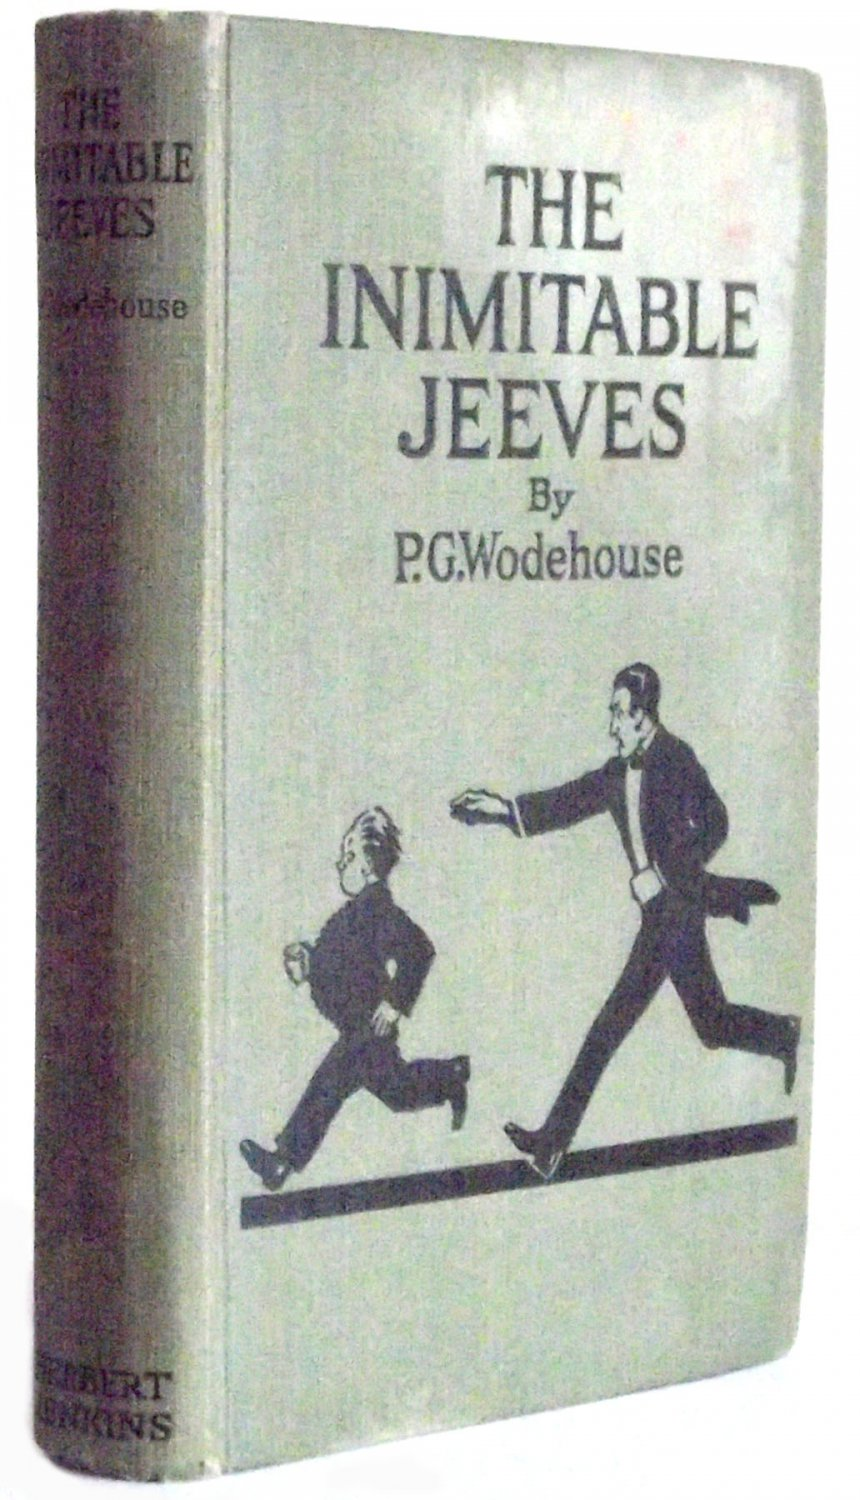 P.G. Wodehouse The Inimitable Jeeves 1926